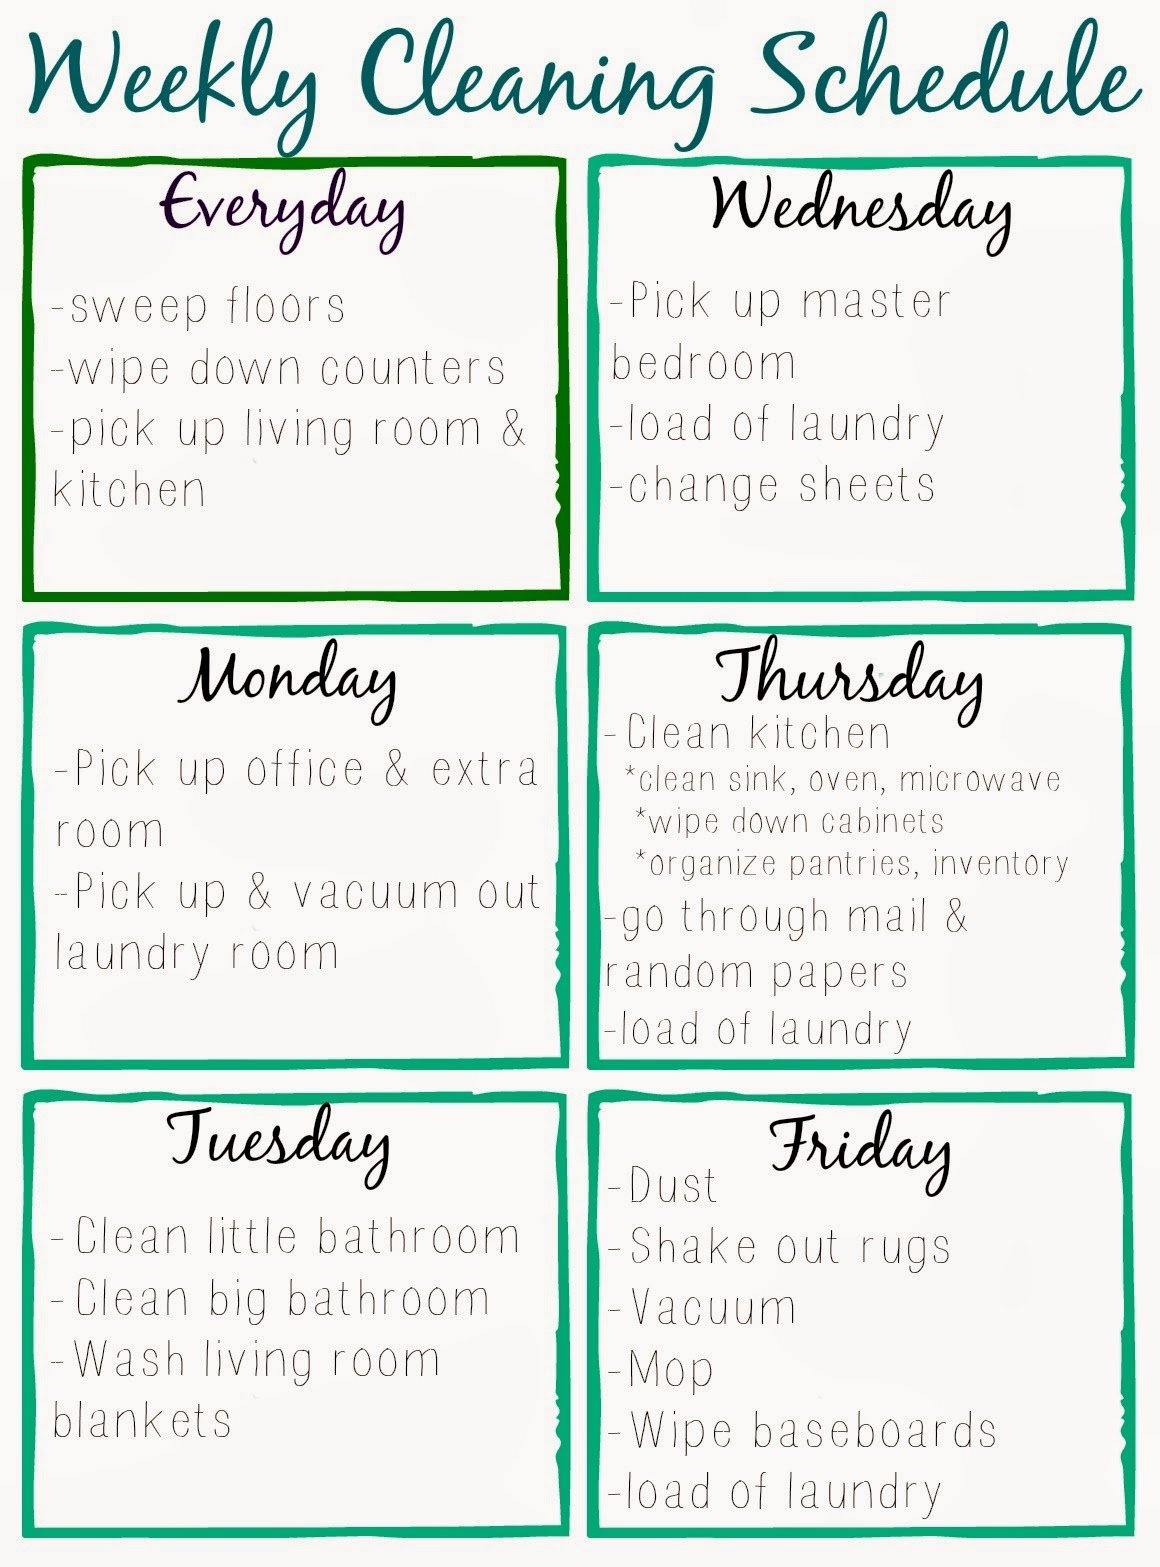 Work Cleaning Schedule Template Fresh orchard Girls Free Printable Cleaning Schedule